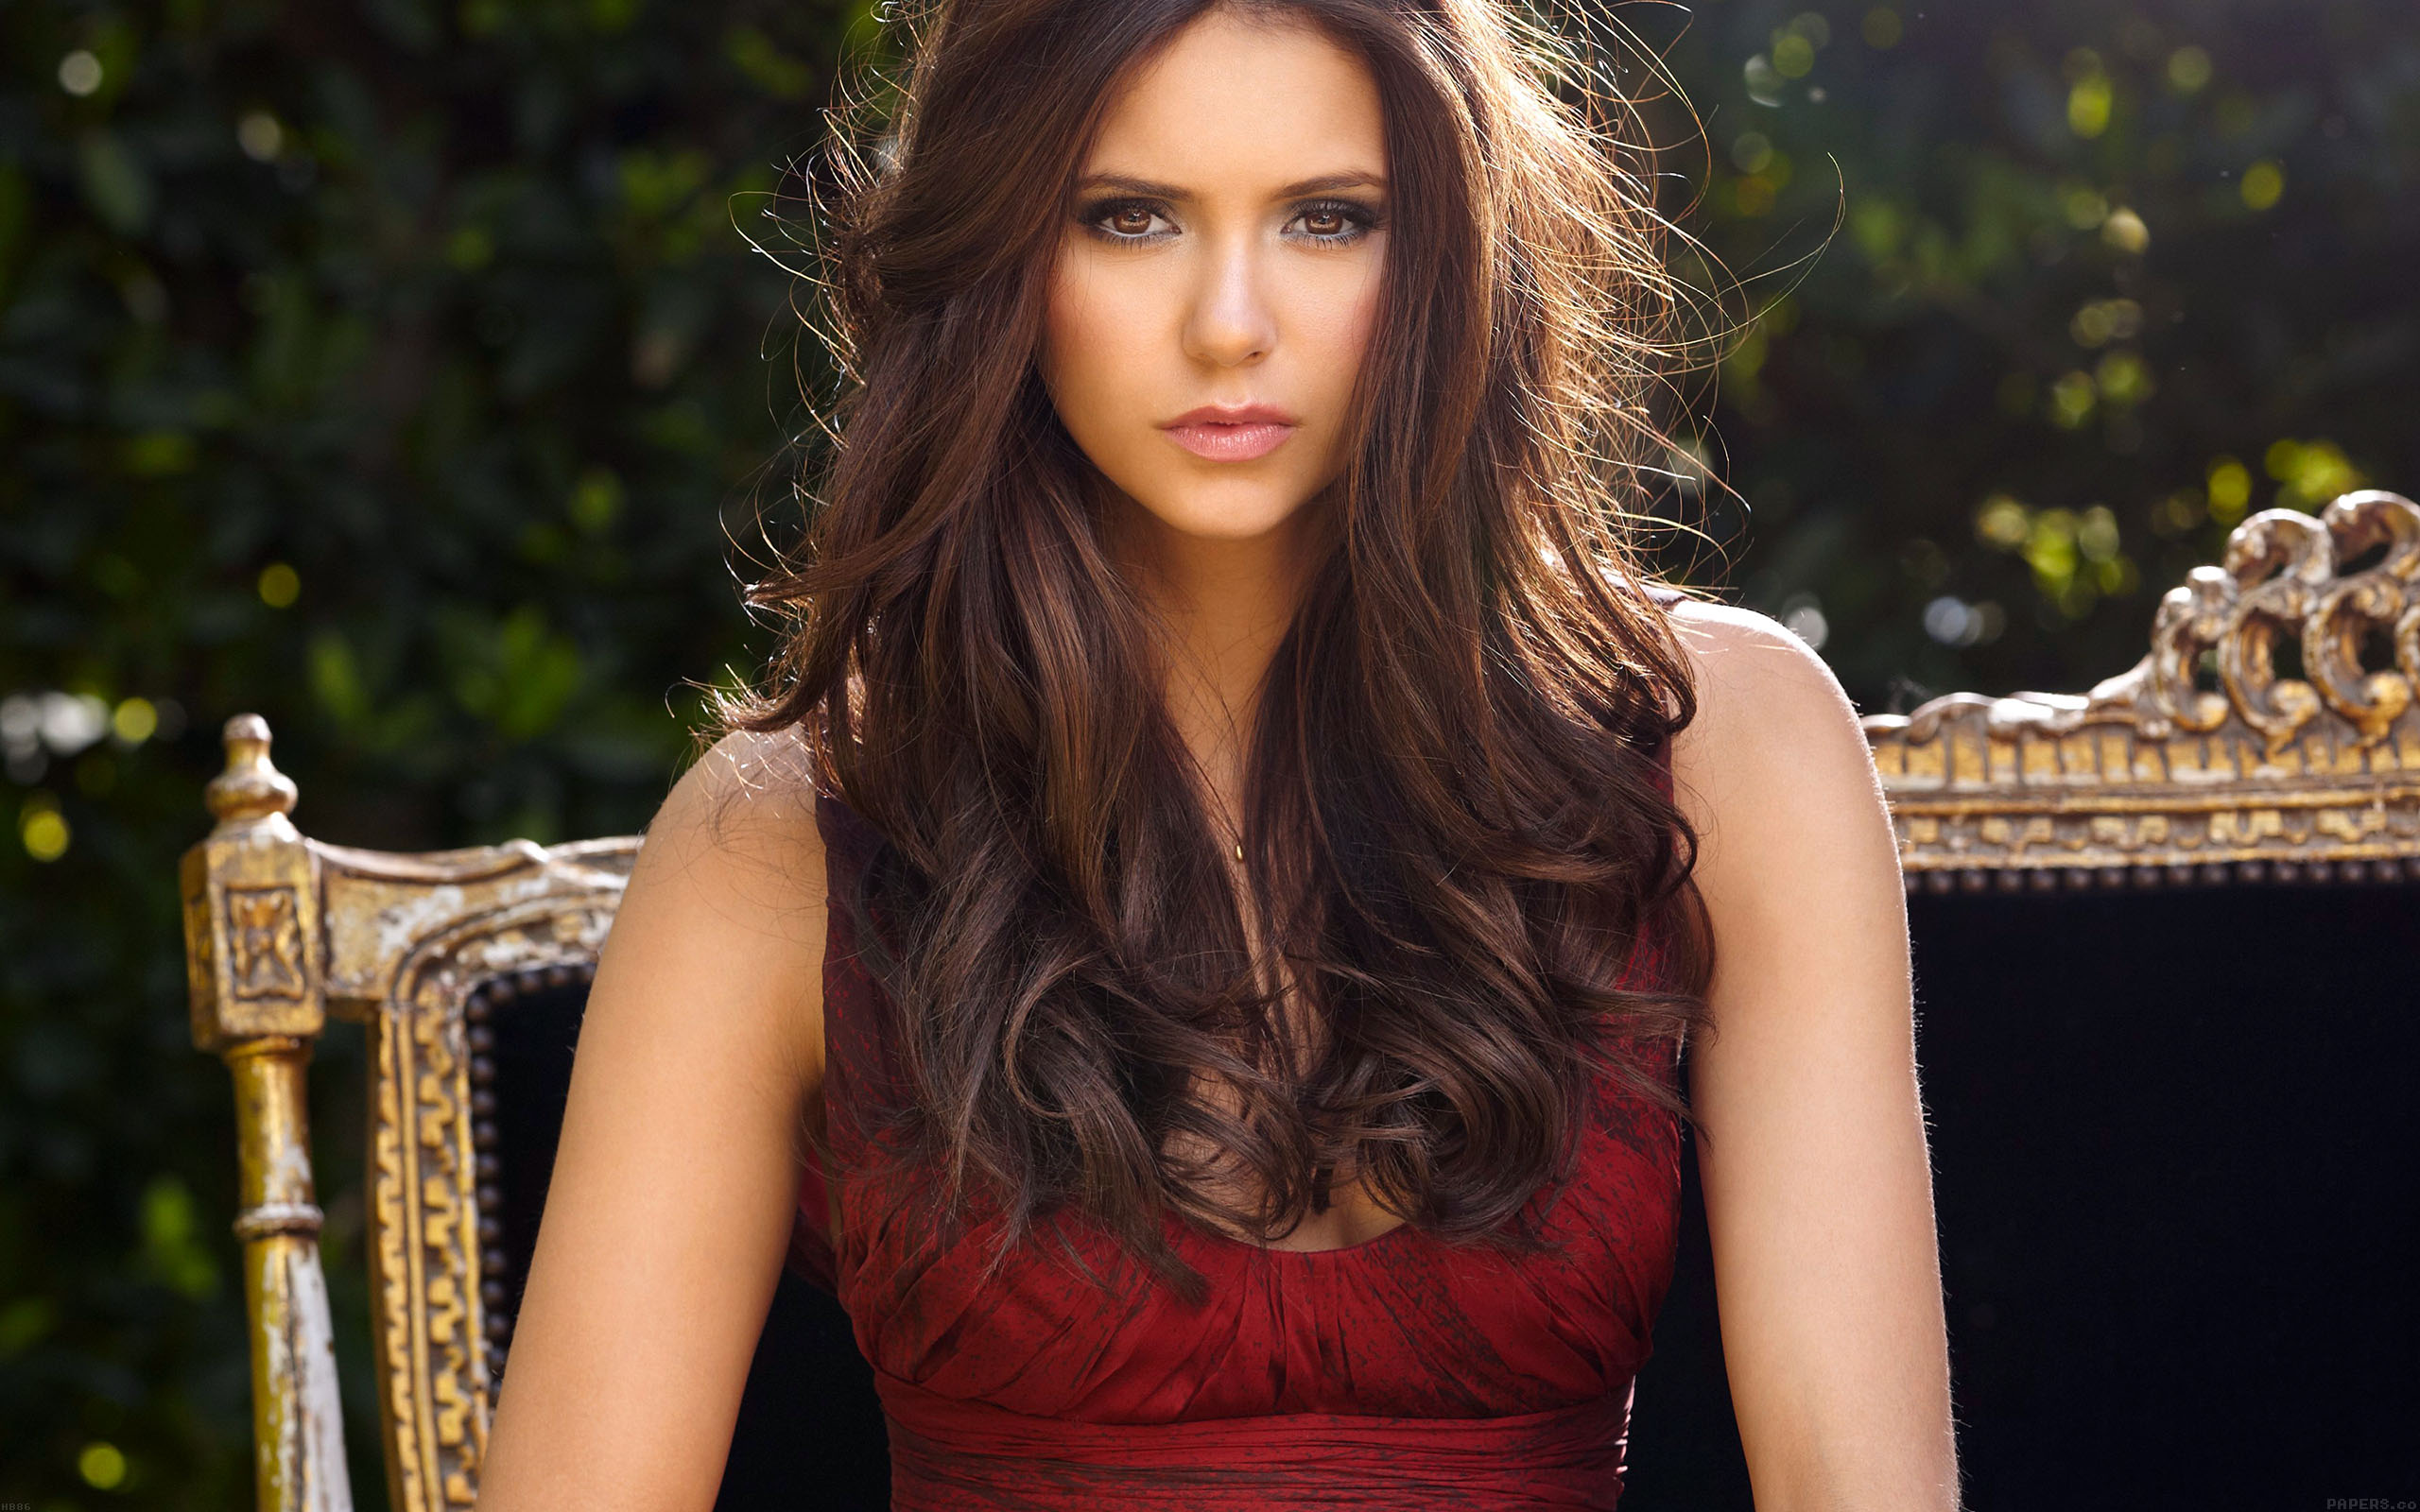 hb86-nina-dobrev-actress-cute - Papers.co